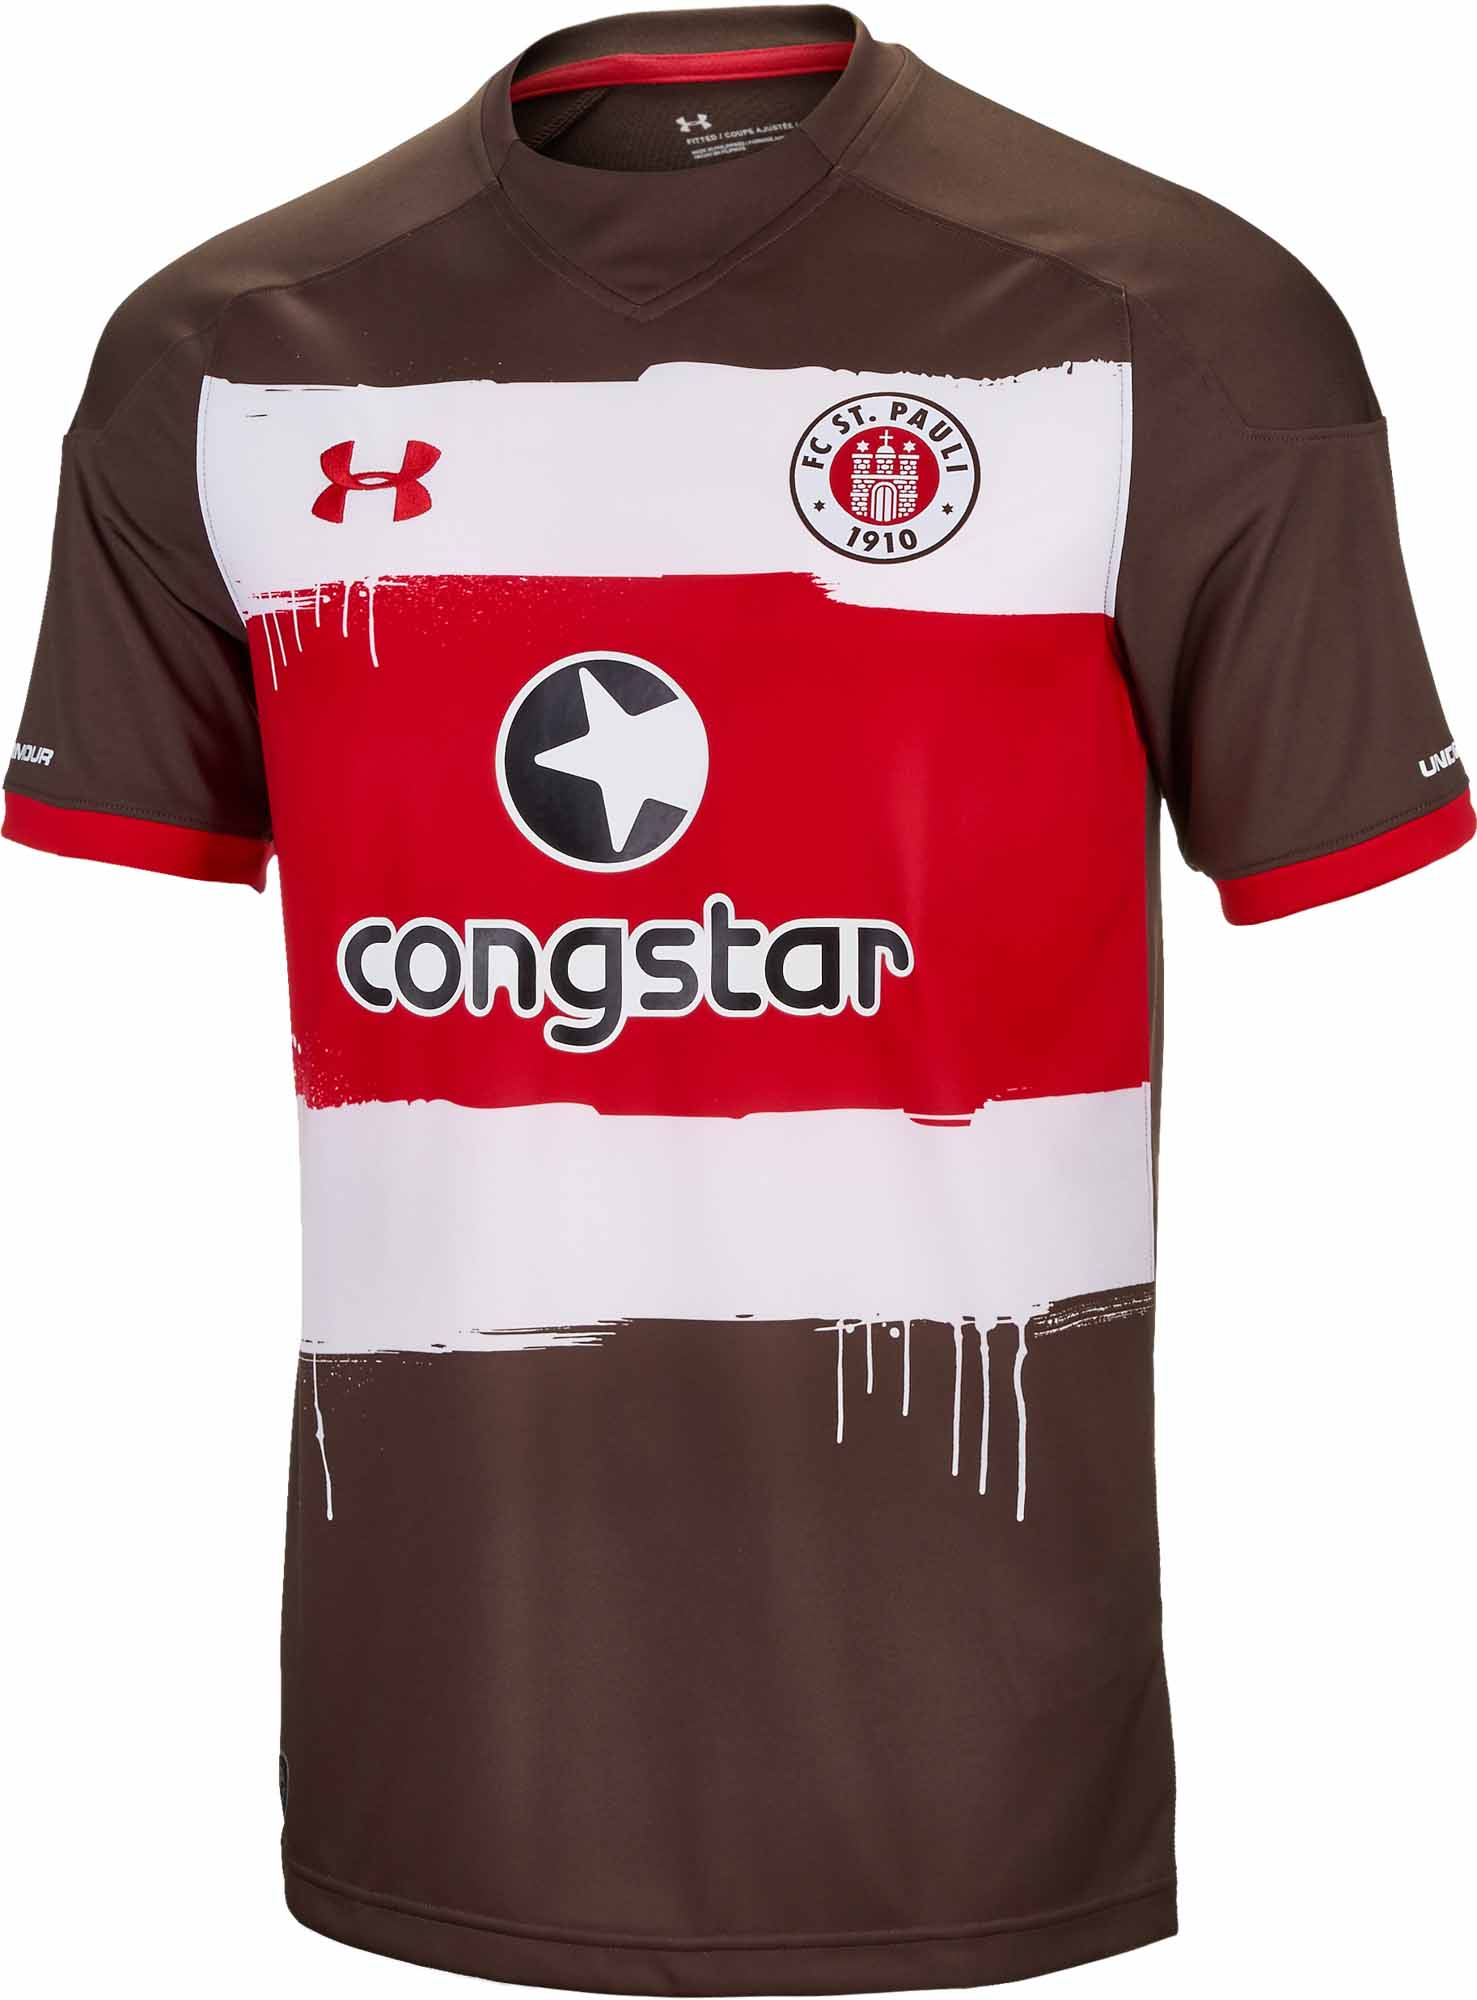 08c71a33879 Home / Licensed Soccer Jerseys and Gear / Club Teams / FC St. Pauli